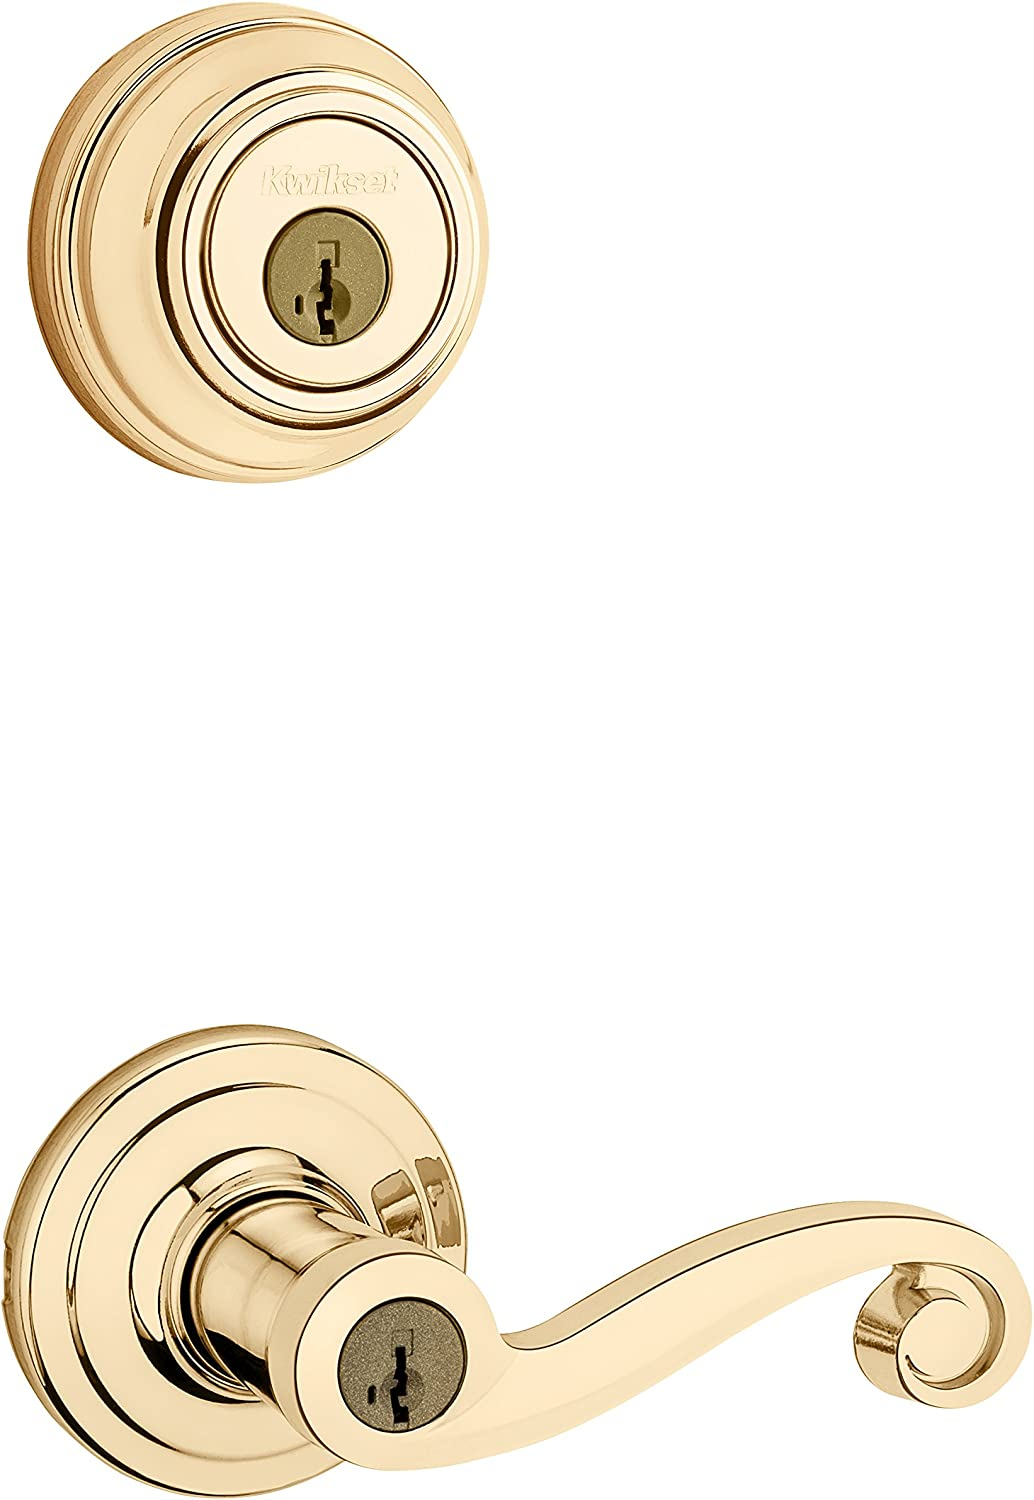 Kwikset Lido Keyed Entry Lever and Single Cylinder Deadbolt Combo Pack with Microban Antimicrobial Protection featuring SmartKey Security in Polished Brass